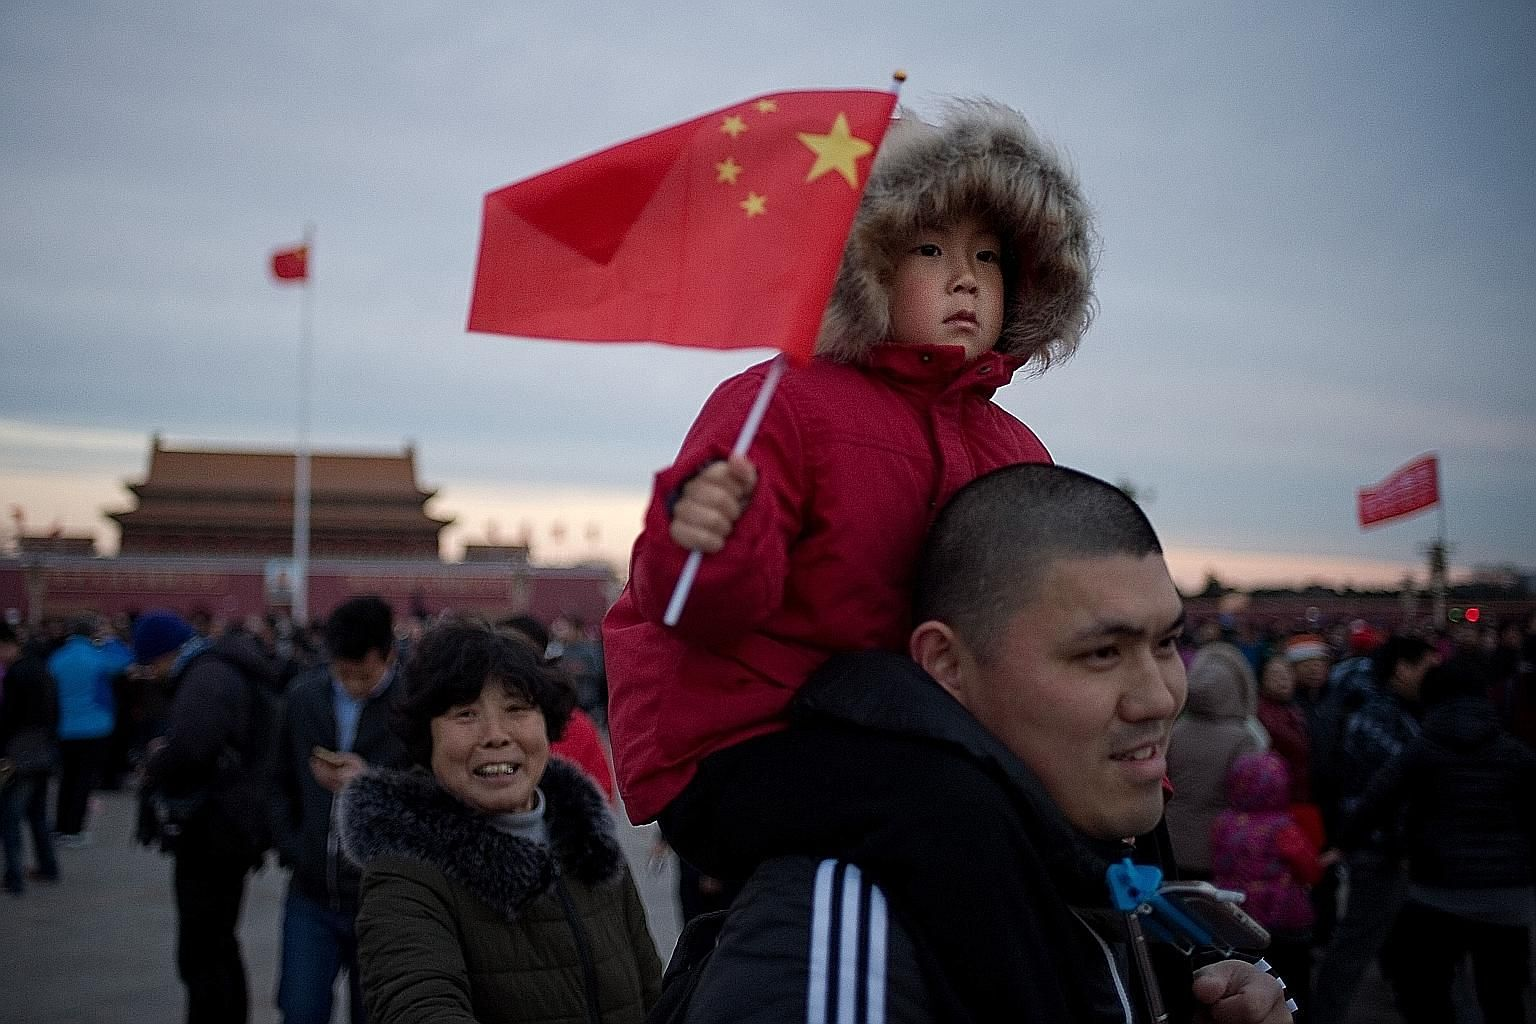 Crowds at Tiananmen Square in Beijing. China's Belt and Road Initiative to invest billions in infrastructure development around the region could throw up a wealth of opportunities for Singapore firms, especially those able to pair up with Chinese par